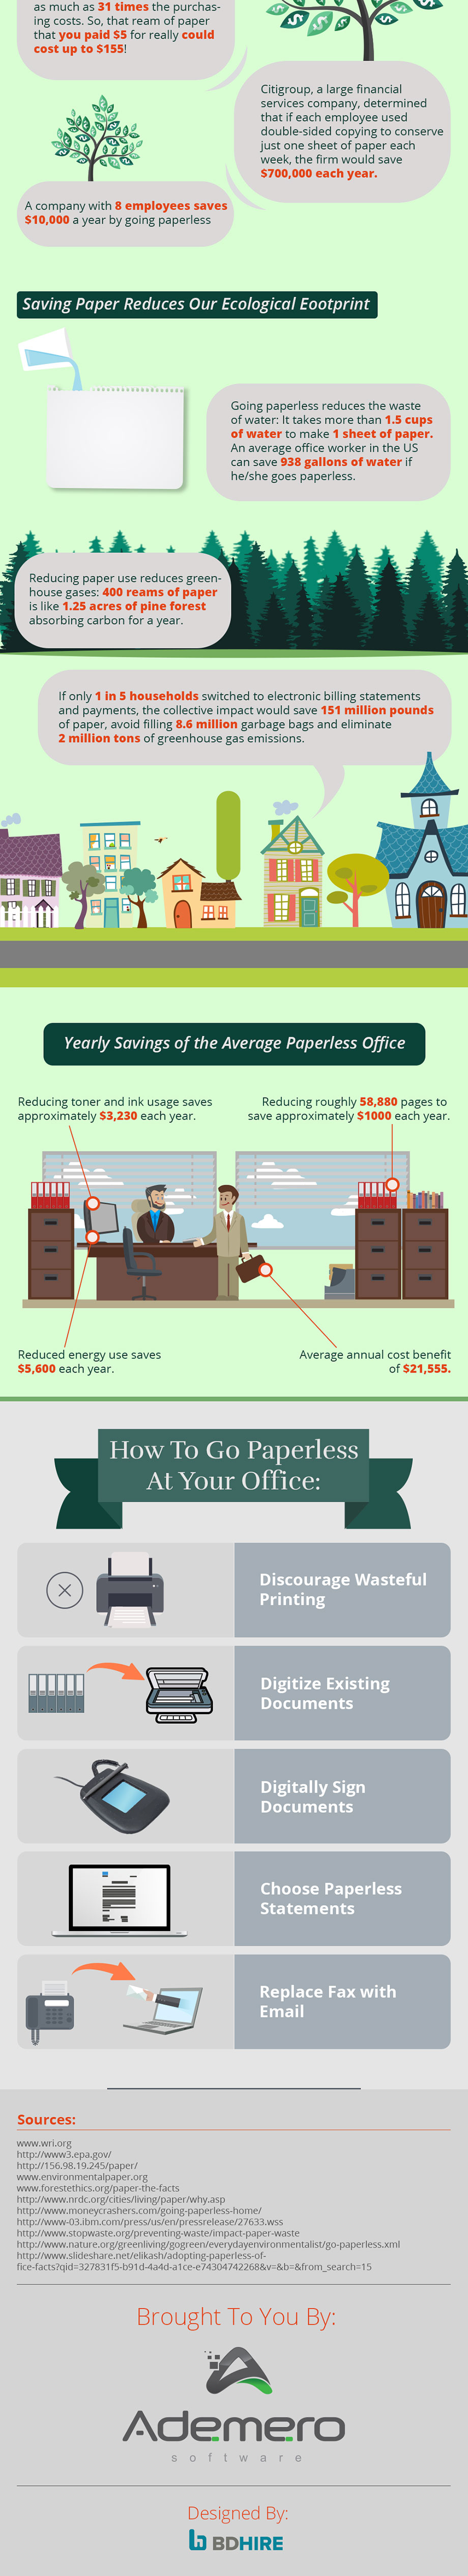 Here's Why Going Paperless is a Must for your Business (Infographic) - Part 2